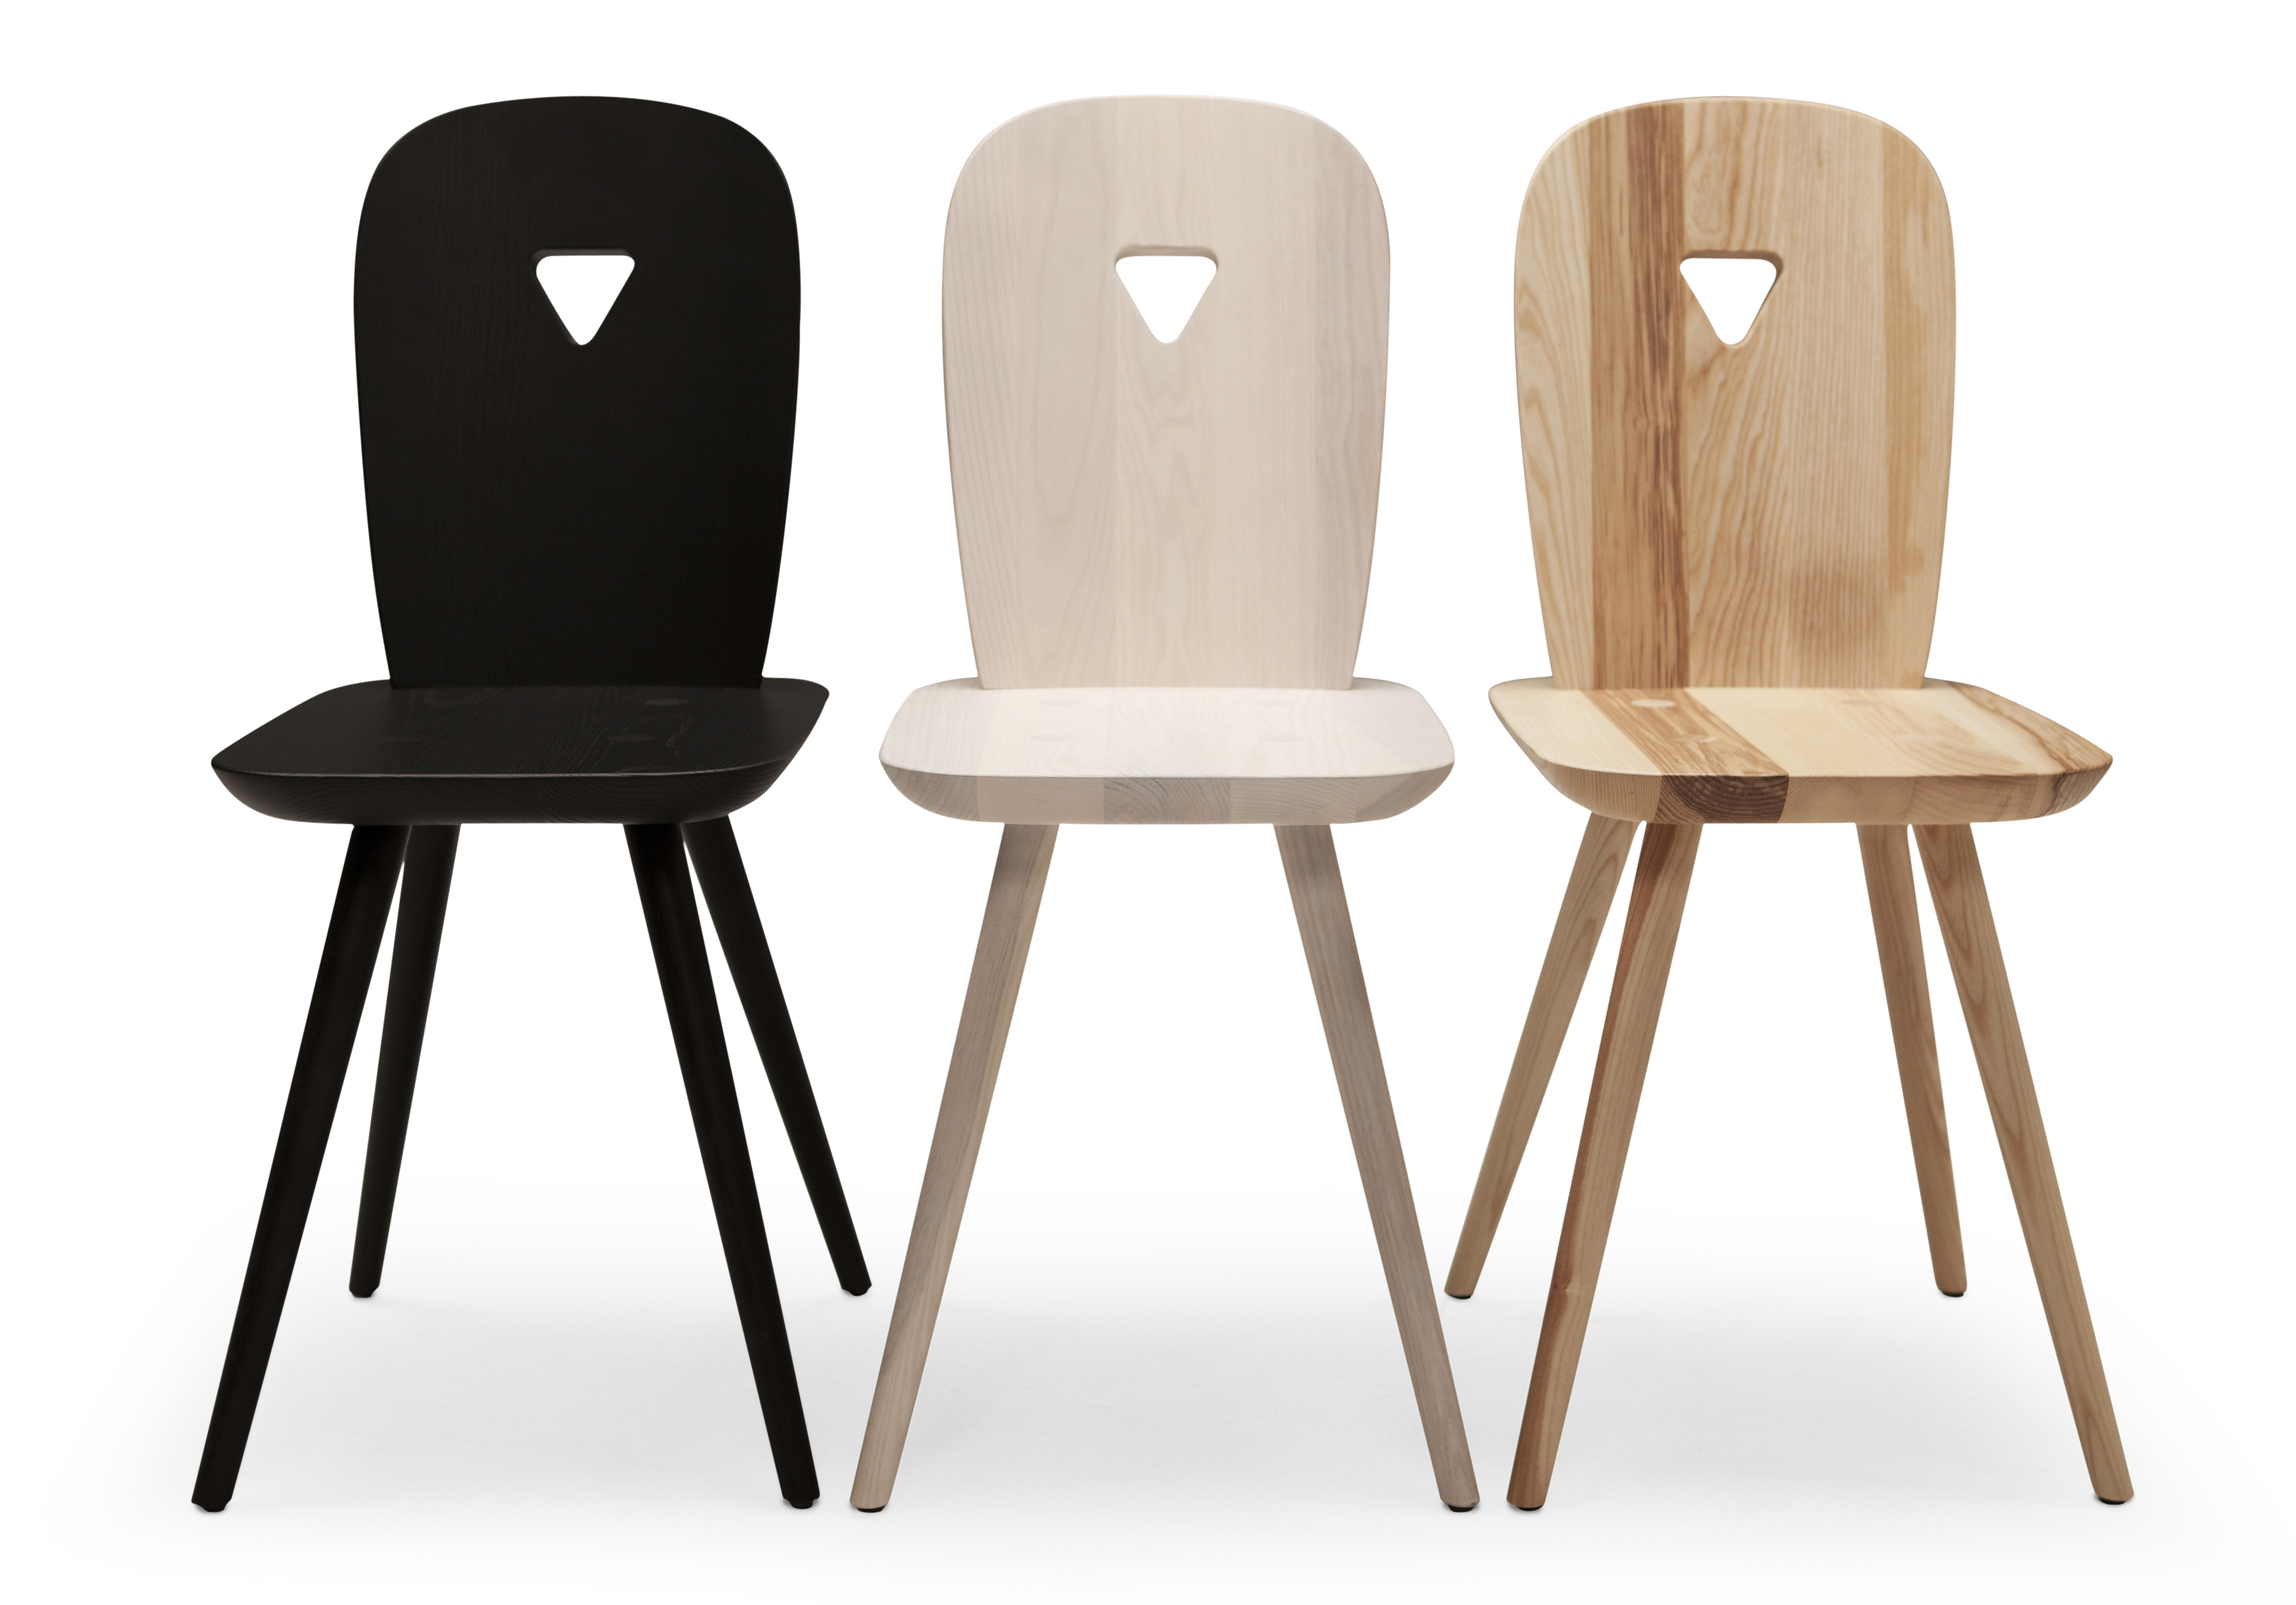 La Dina Chair for Casamania, 2014